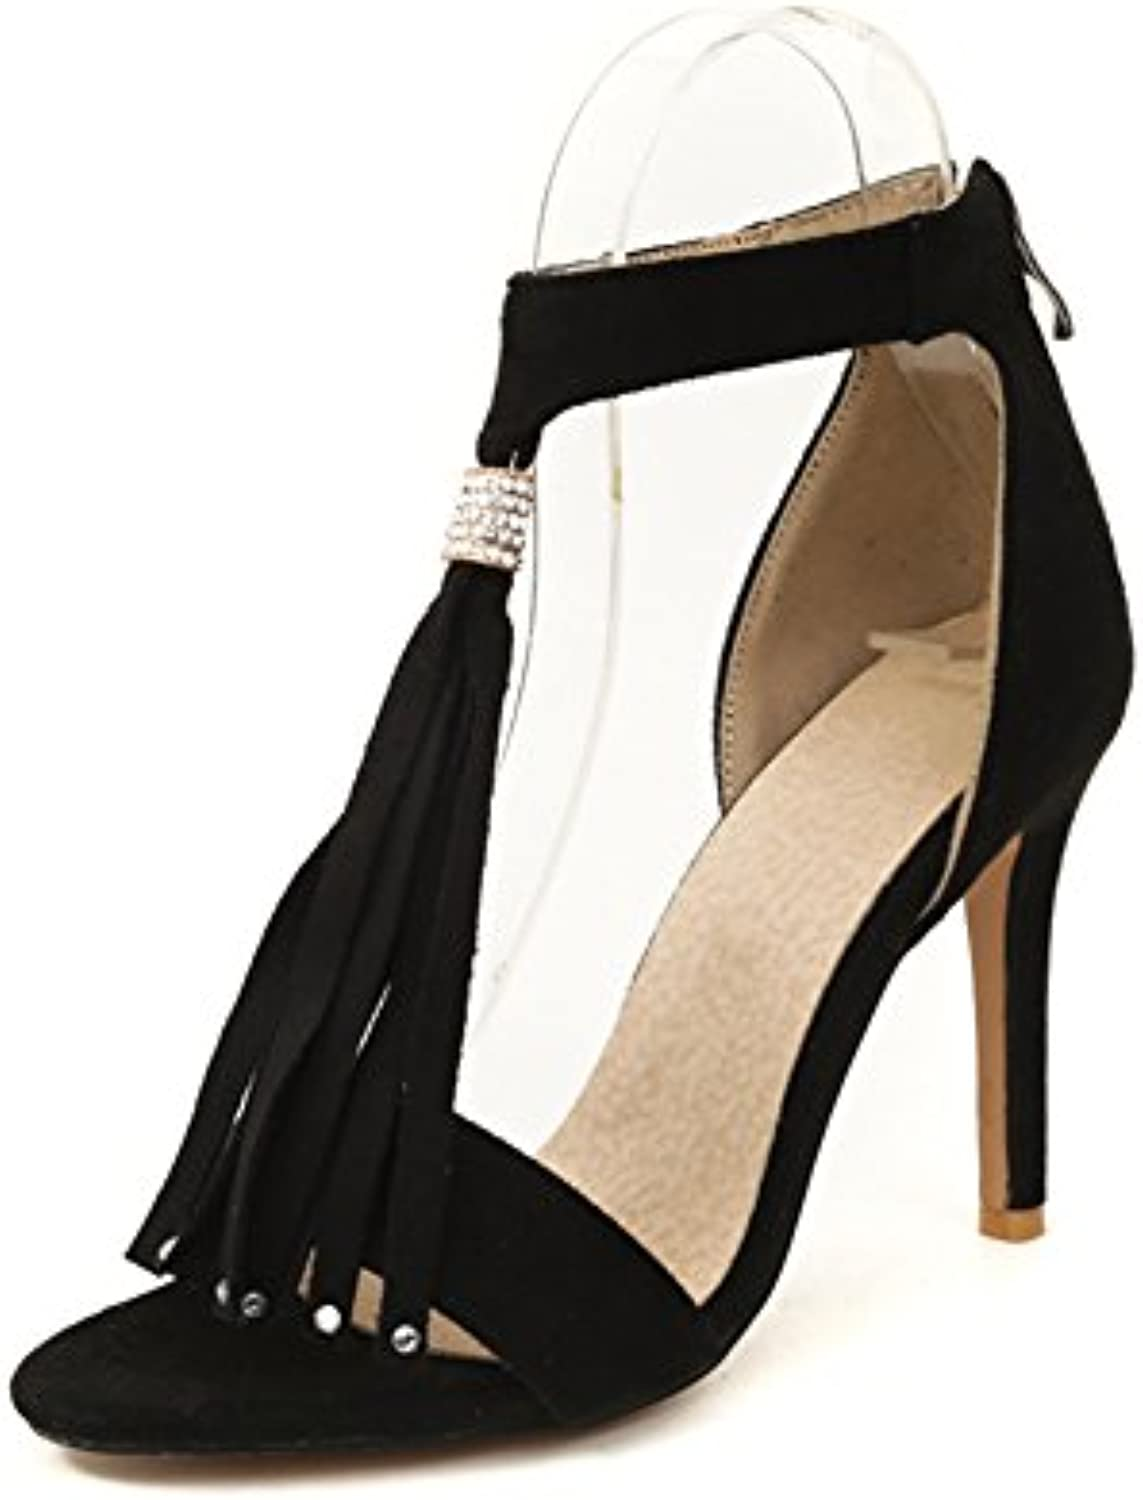 f286309b2e0e Women s Shoes Women s Fringed Suede Suede Europe and Shoes Ladies The 30219  United States HIGT Fine with Ladies Sandals B07CG5CQZZ Parent ede41d5